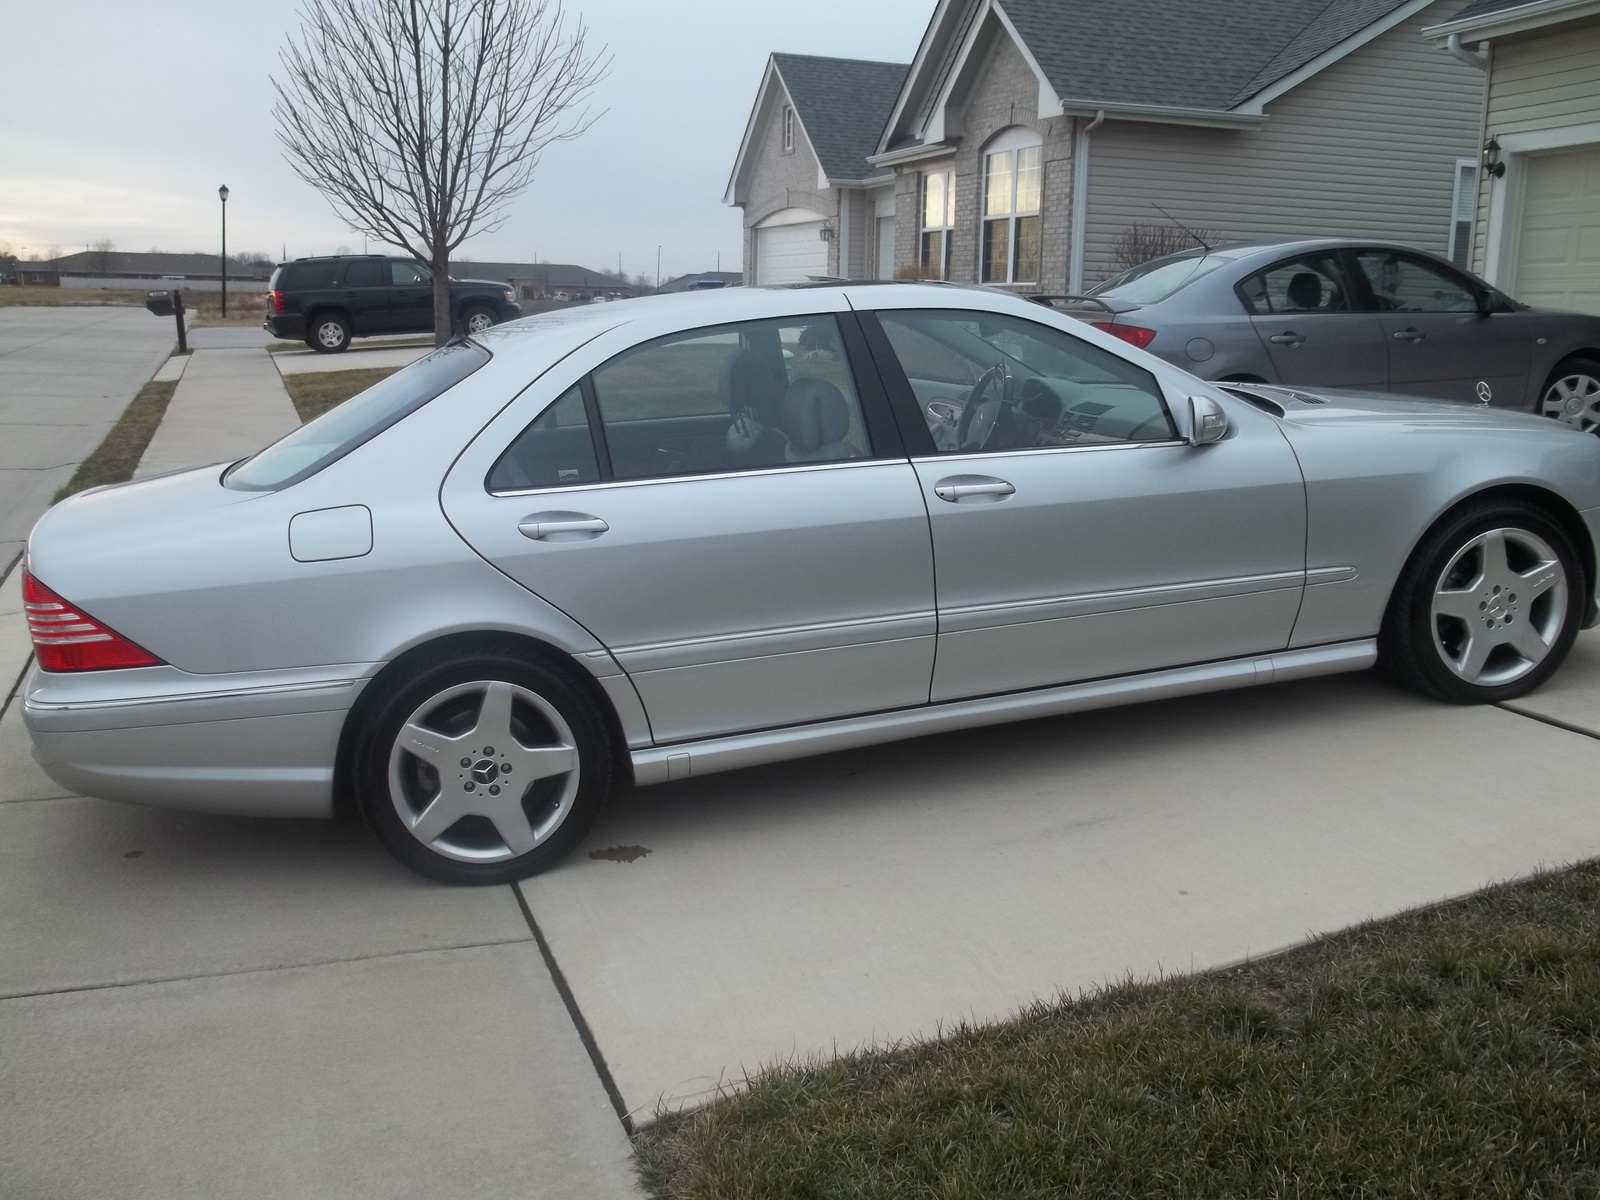 2003 mercedes benz s class pictures cargurus for 2003 mercedes benz suv